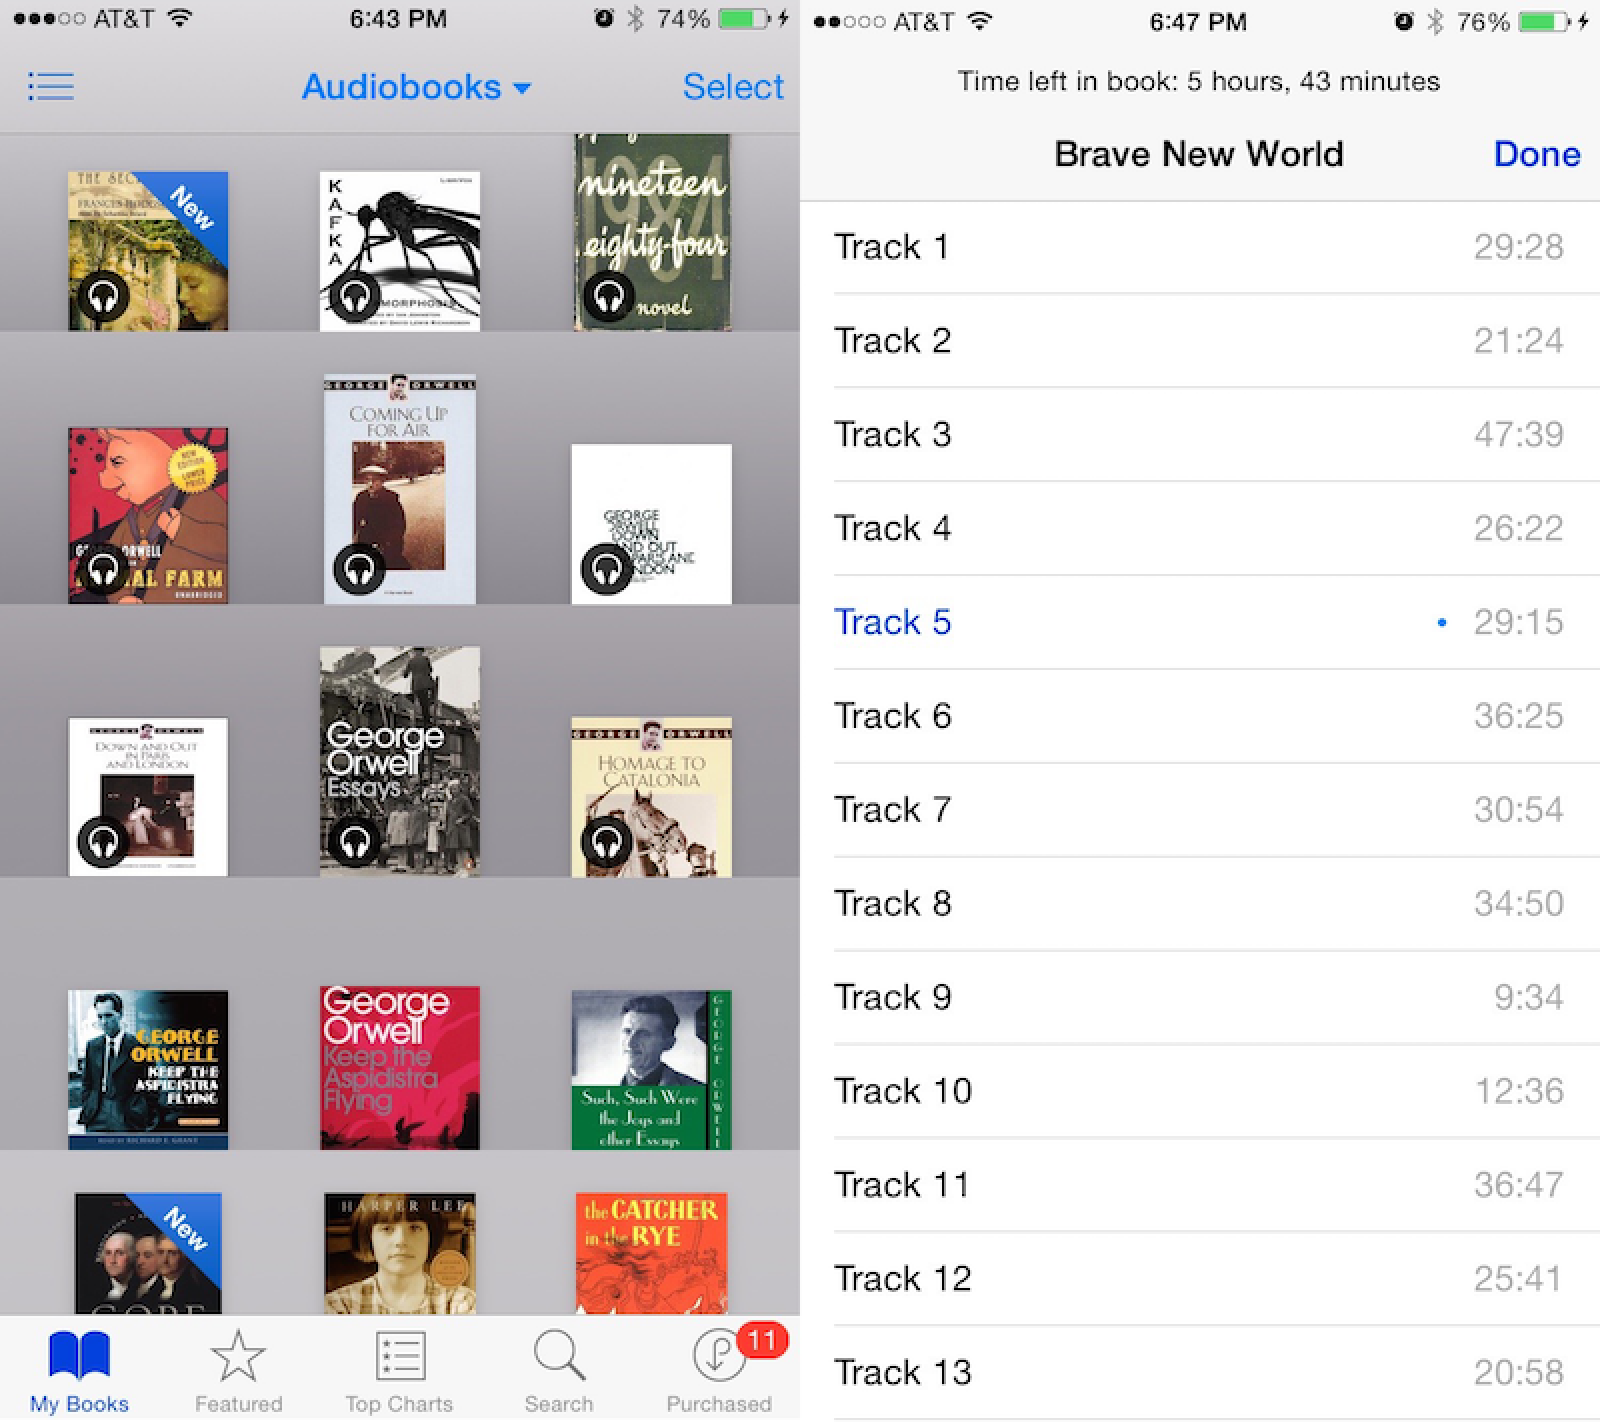 Free E-books, Audiobooks and Movies Using iCloud Email Login